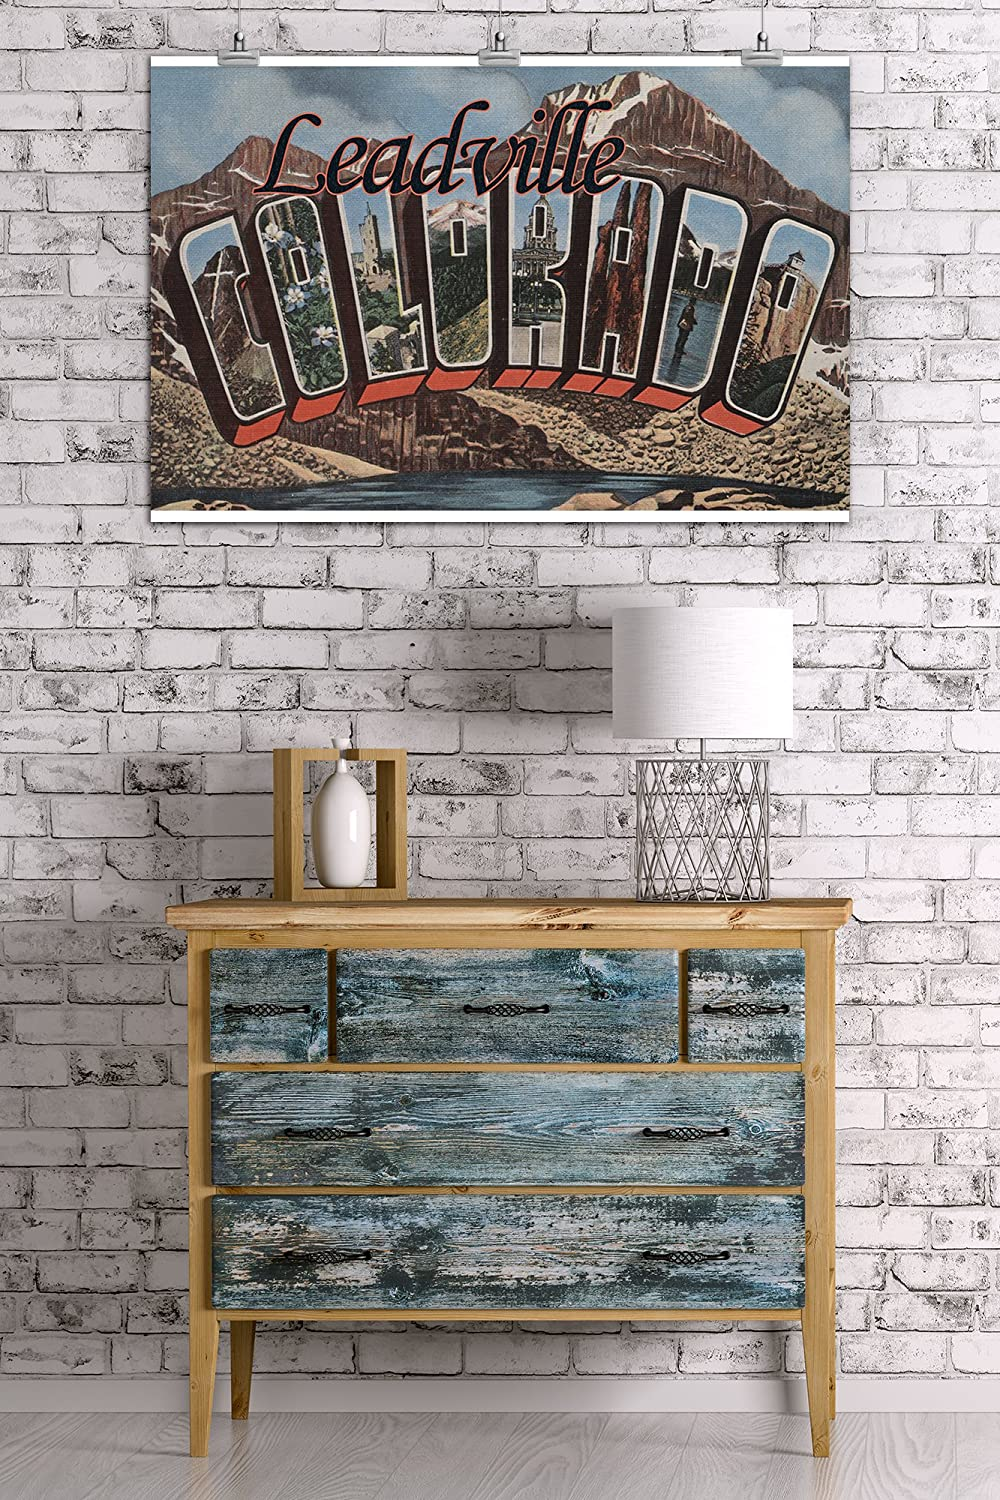 Large Letter Scenes Colorado Leadville 24x36 Giclee Gallery Print, Wall Decor Travel Poster